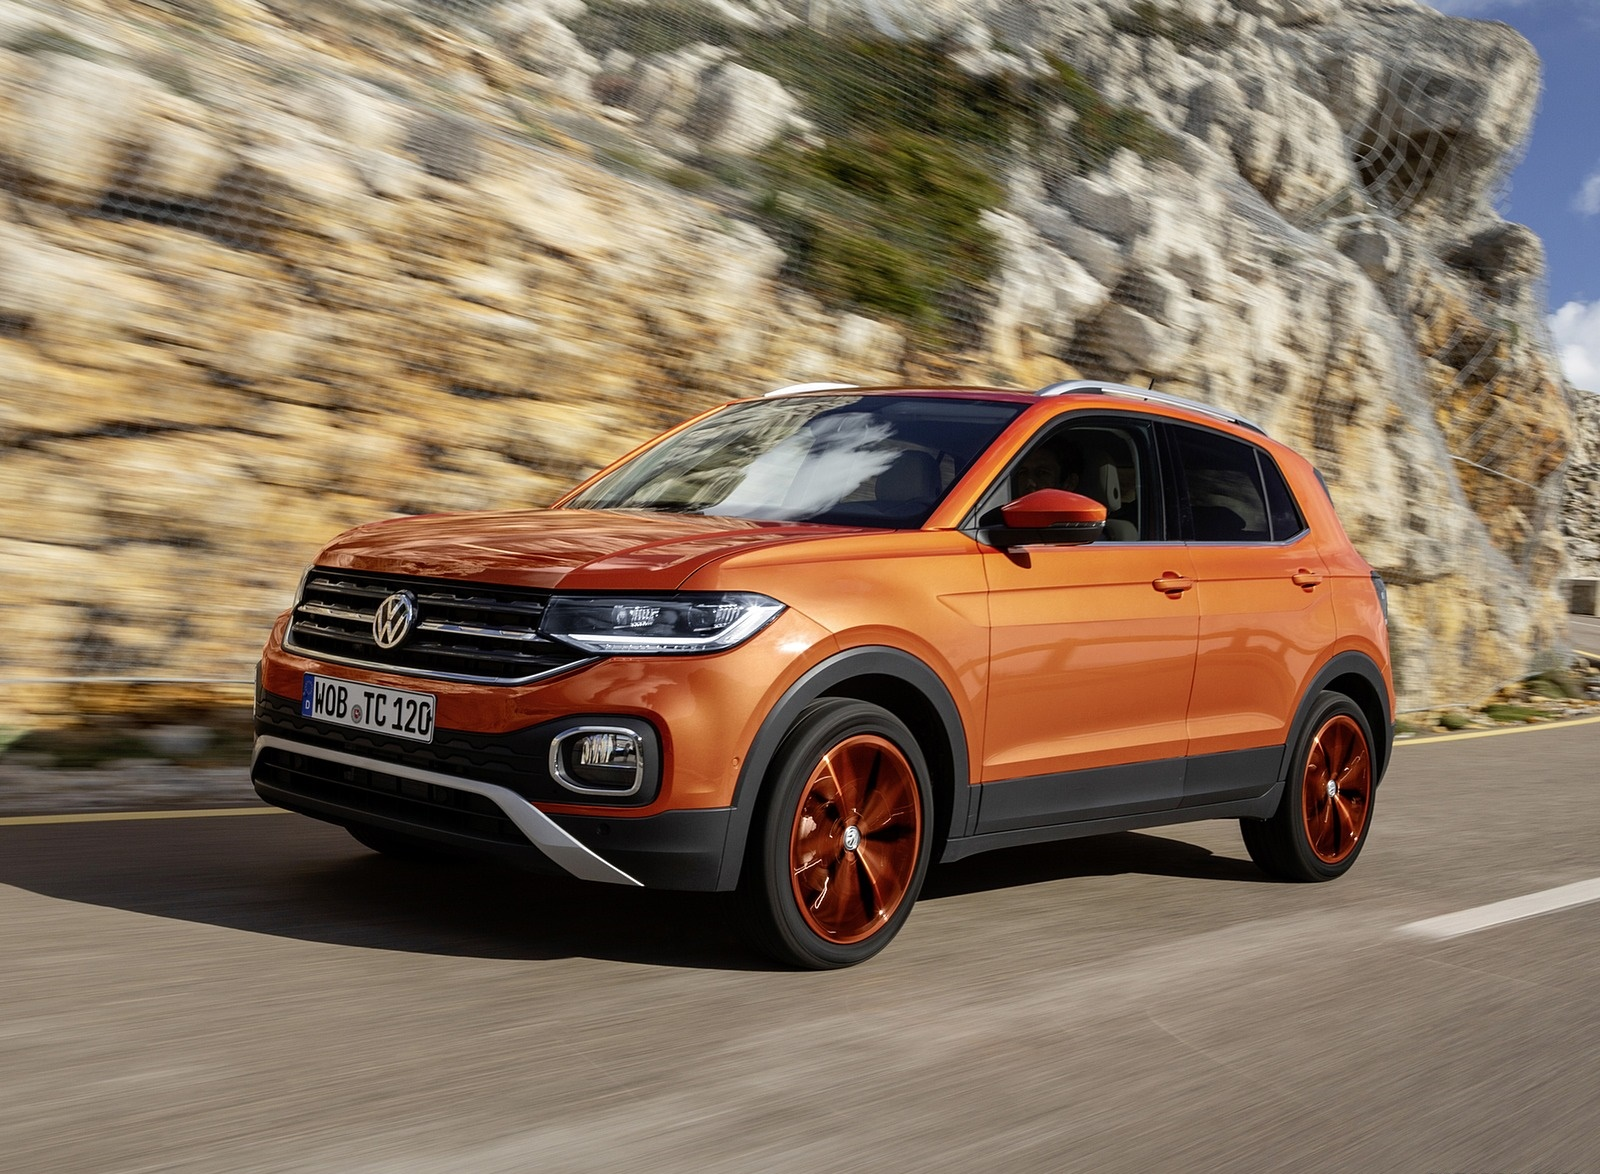 2019 Volkswagen T-Cross Front Three-Quarter Wallpapers #5 of 74